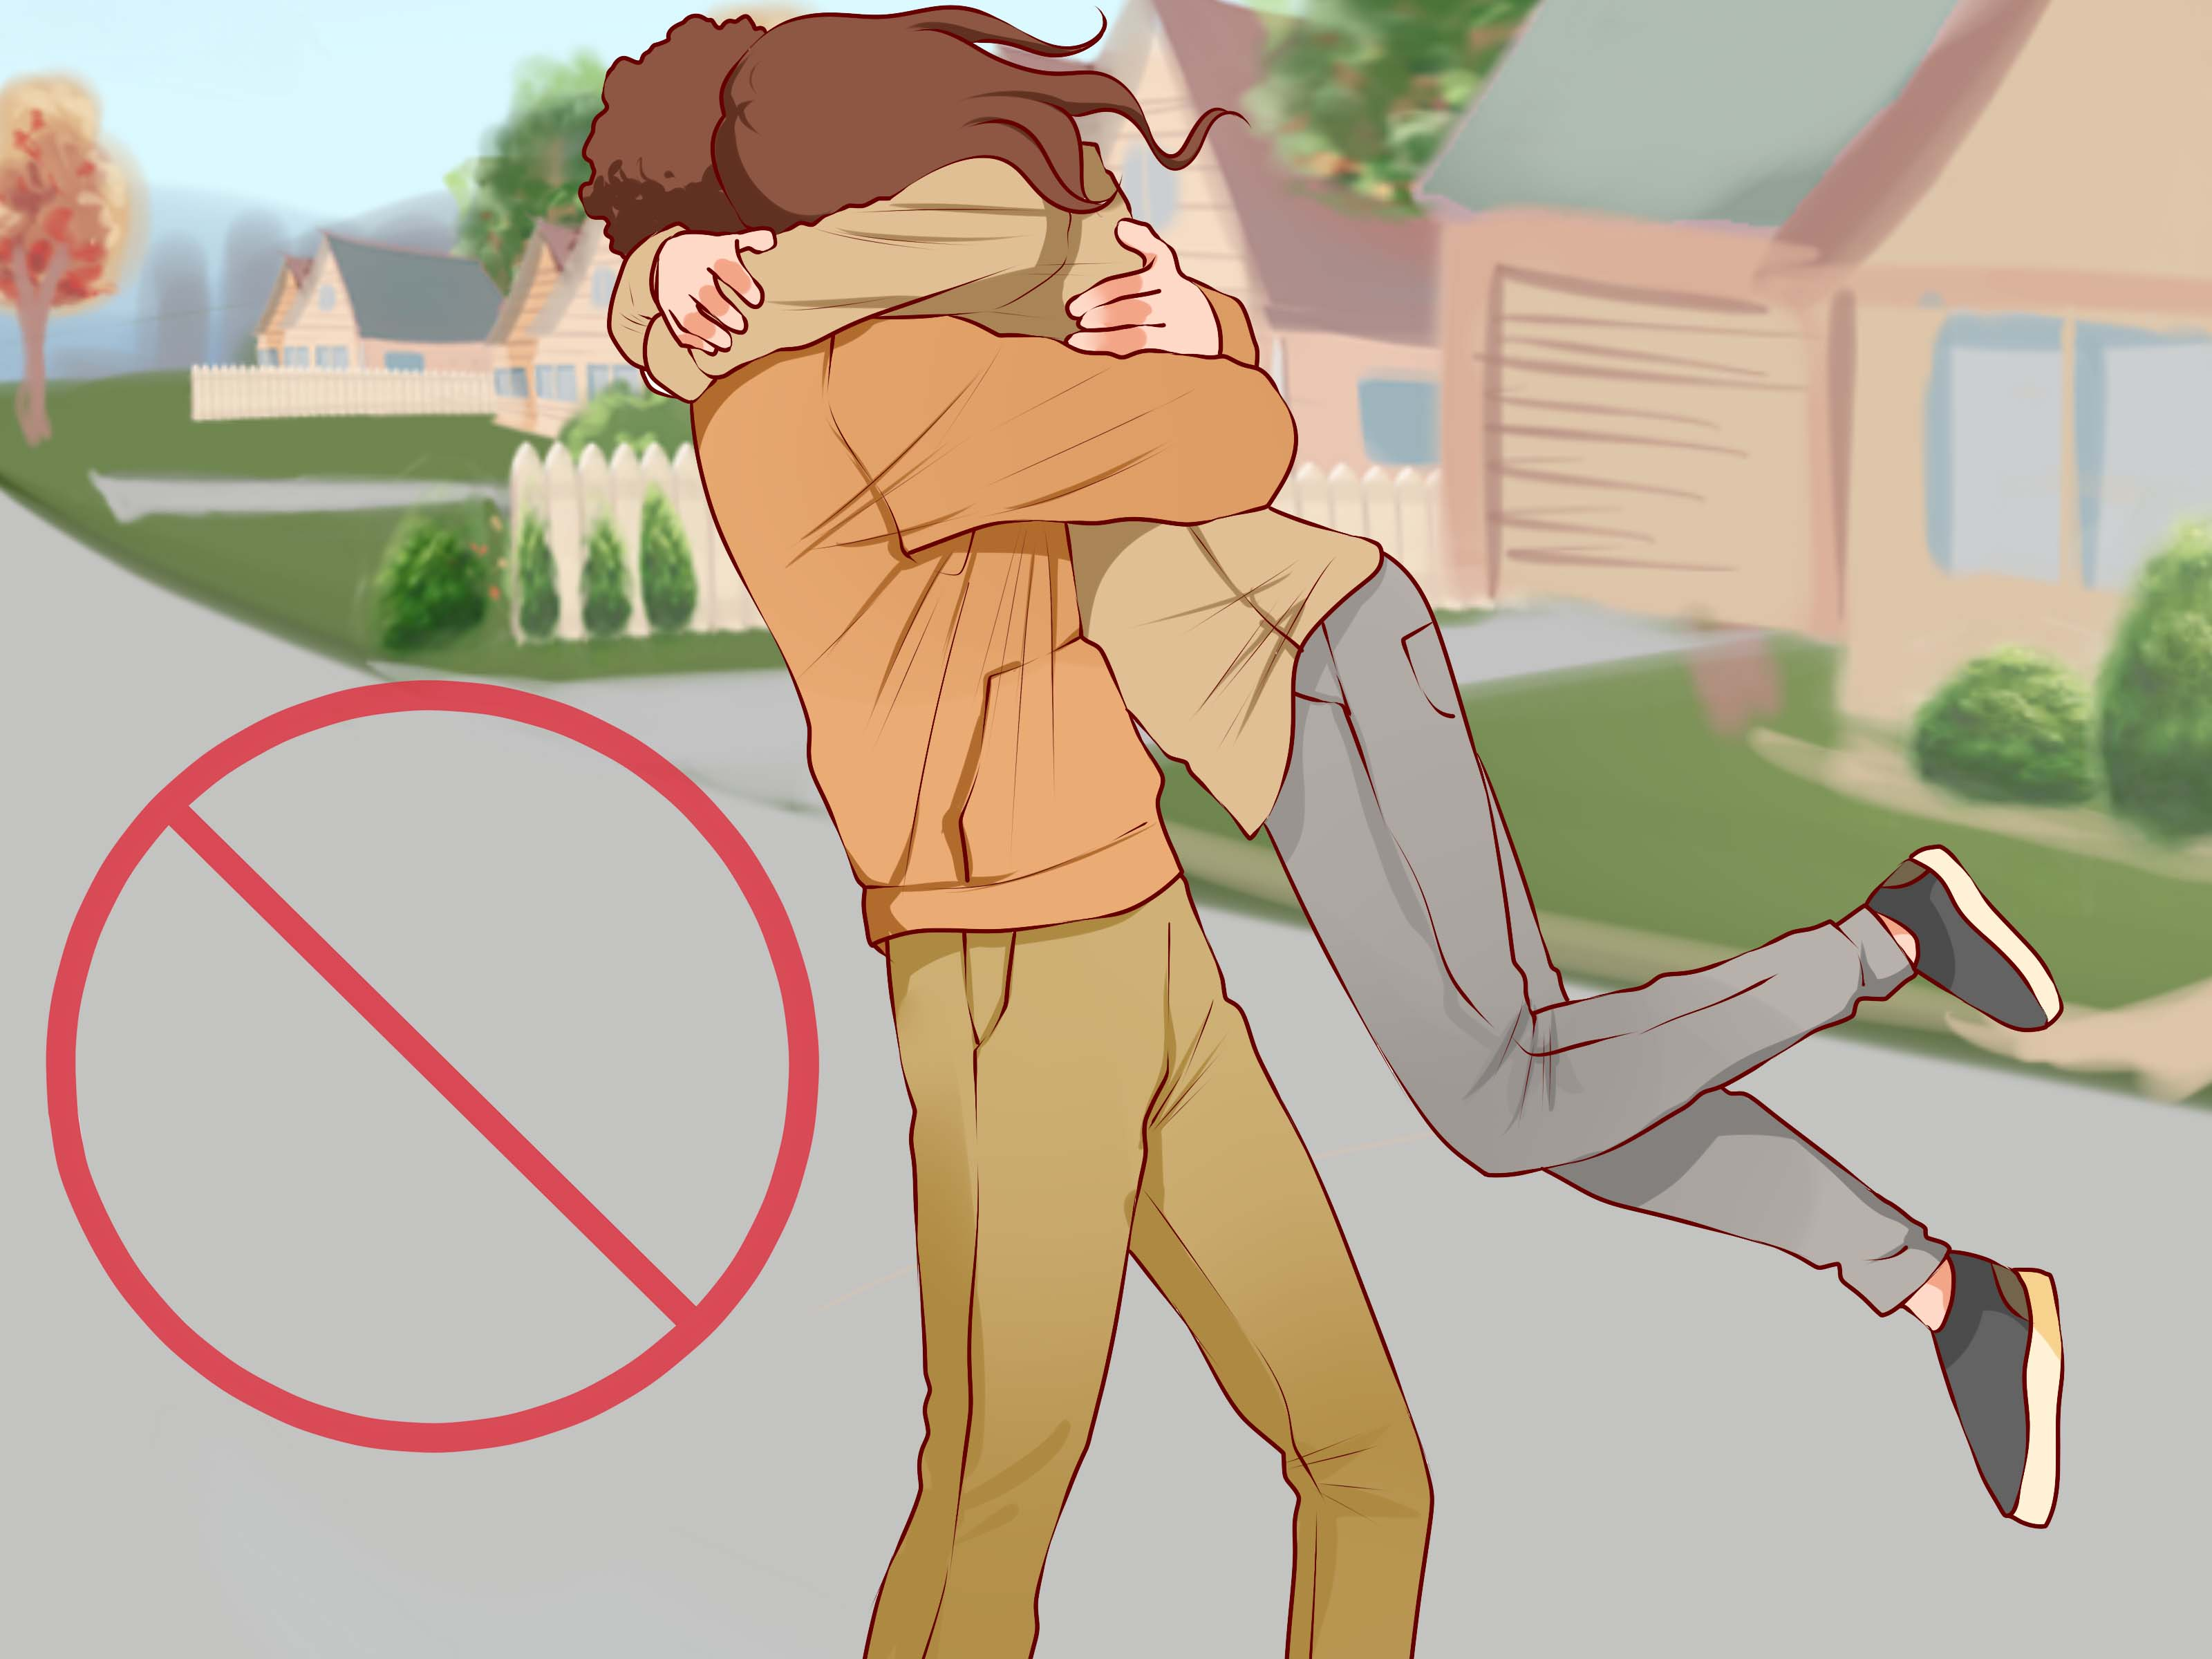 How to get your friend banned from xbox live